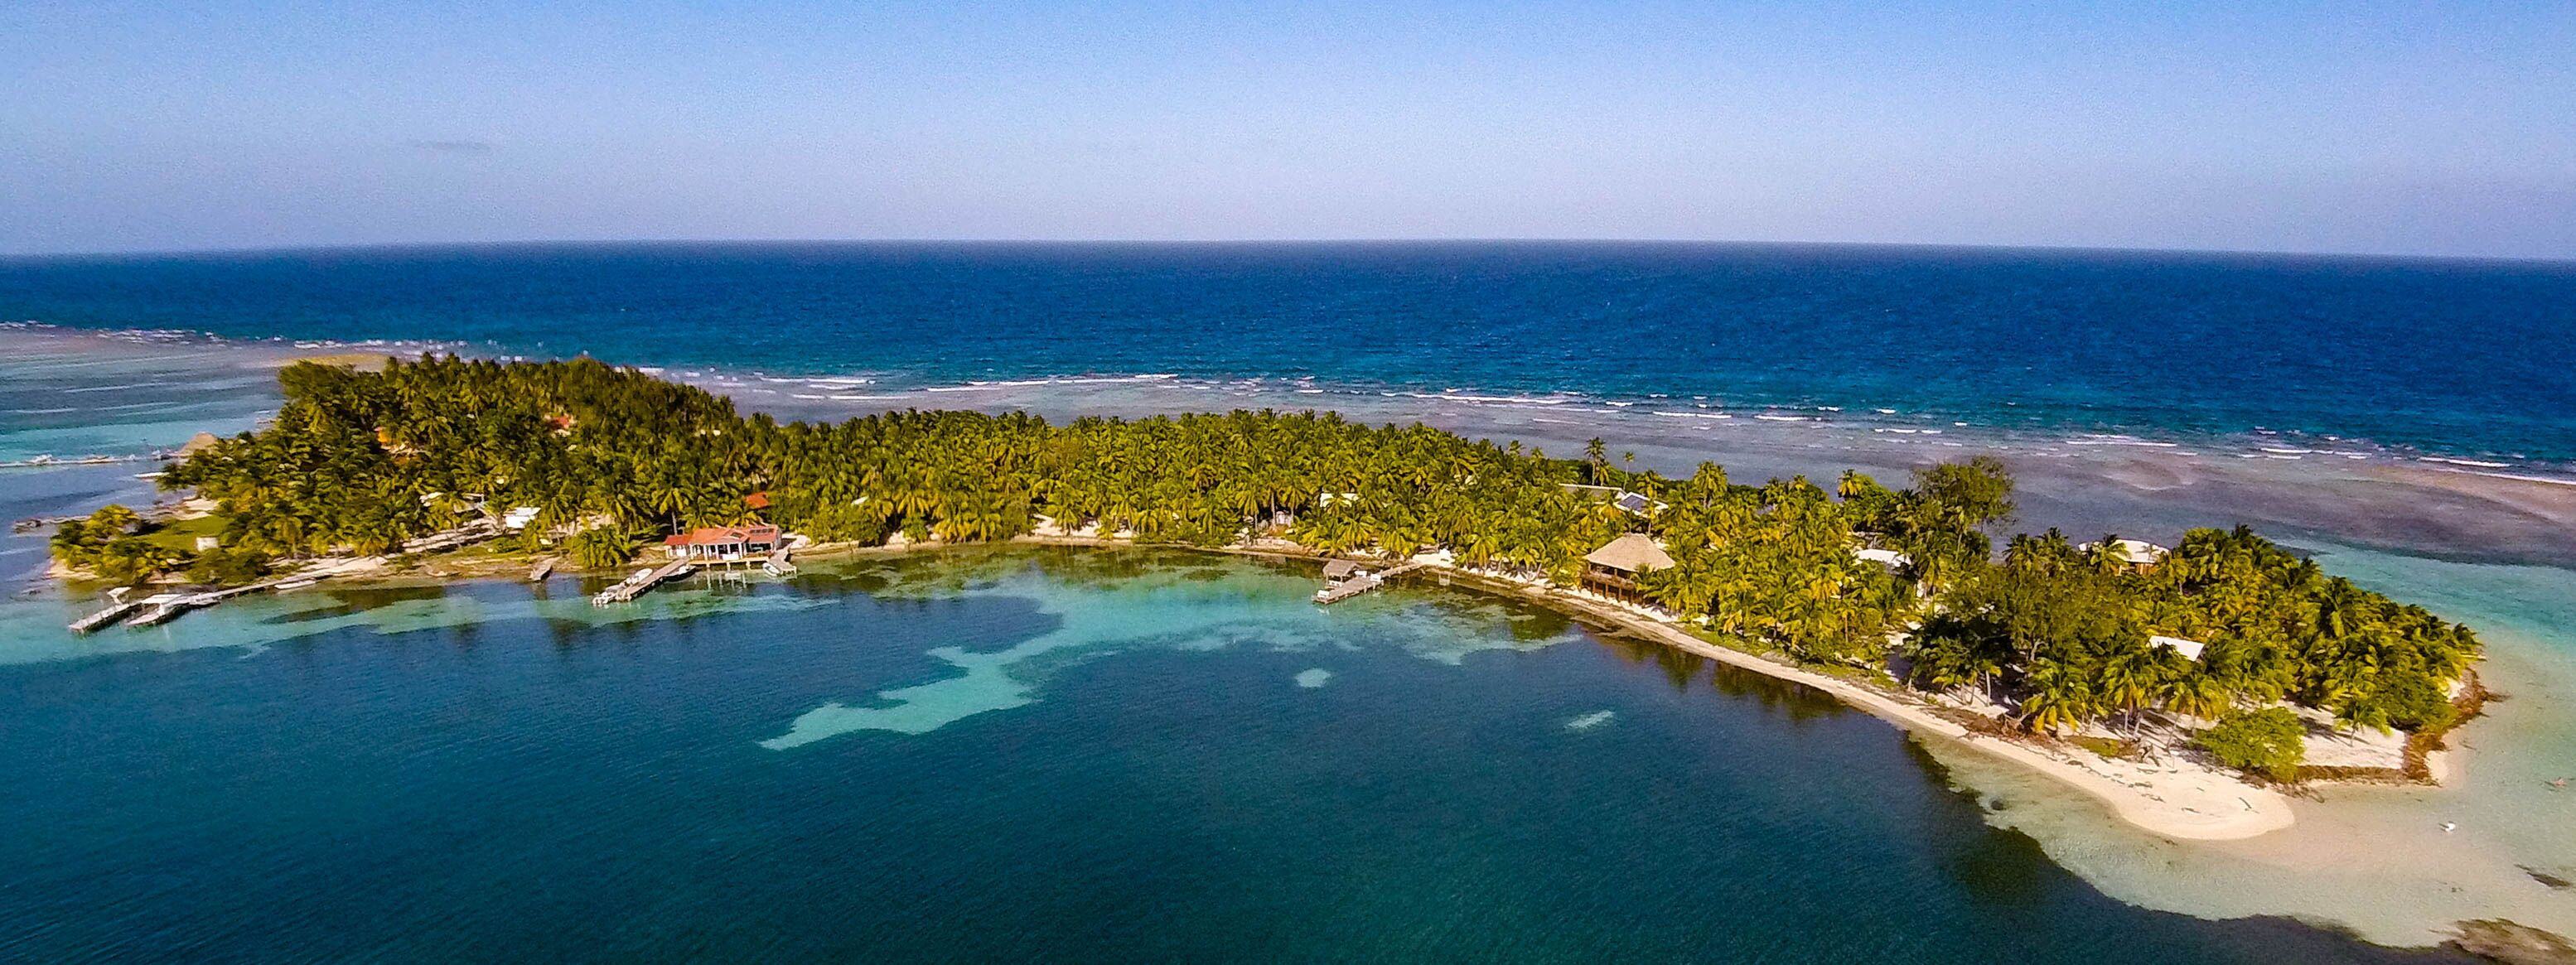 southwater caye belize